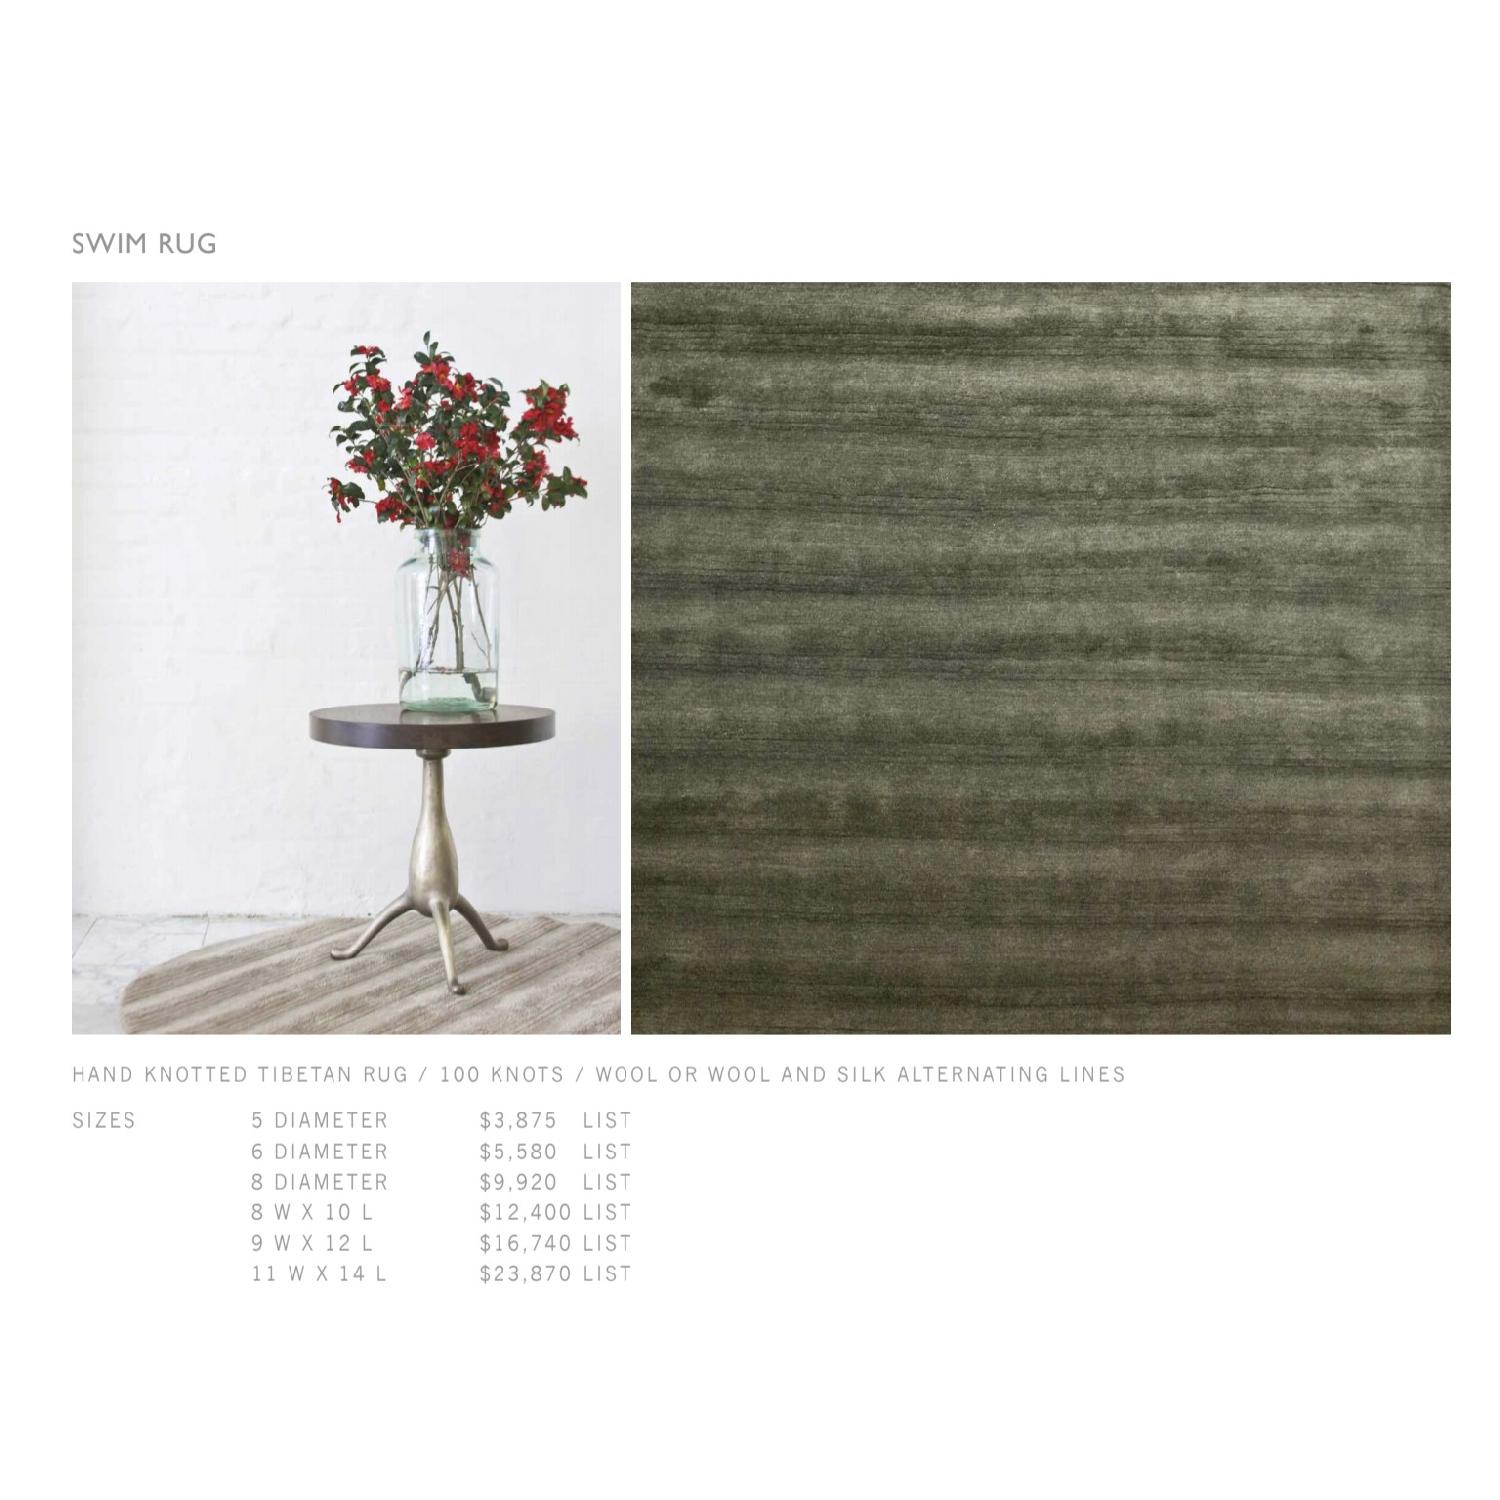 BDDW Ridged Swim Wool & Silk Area Rug - image-4